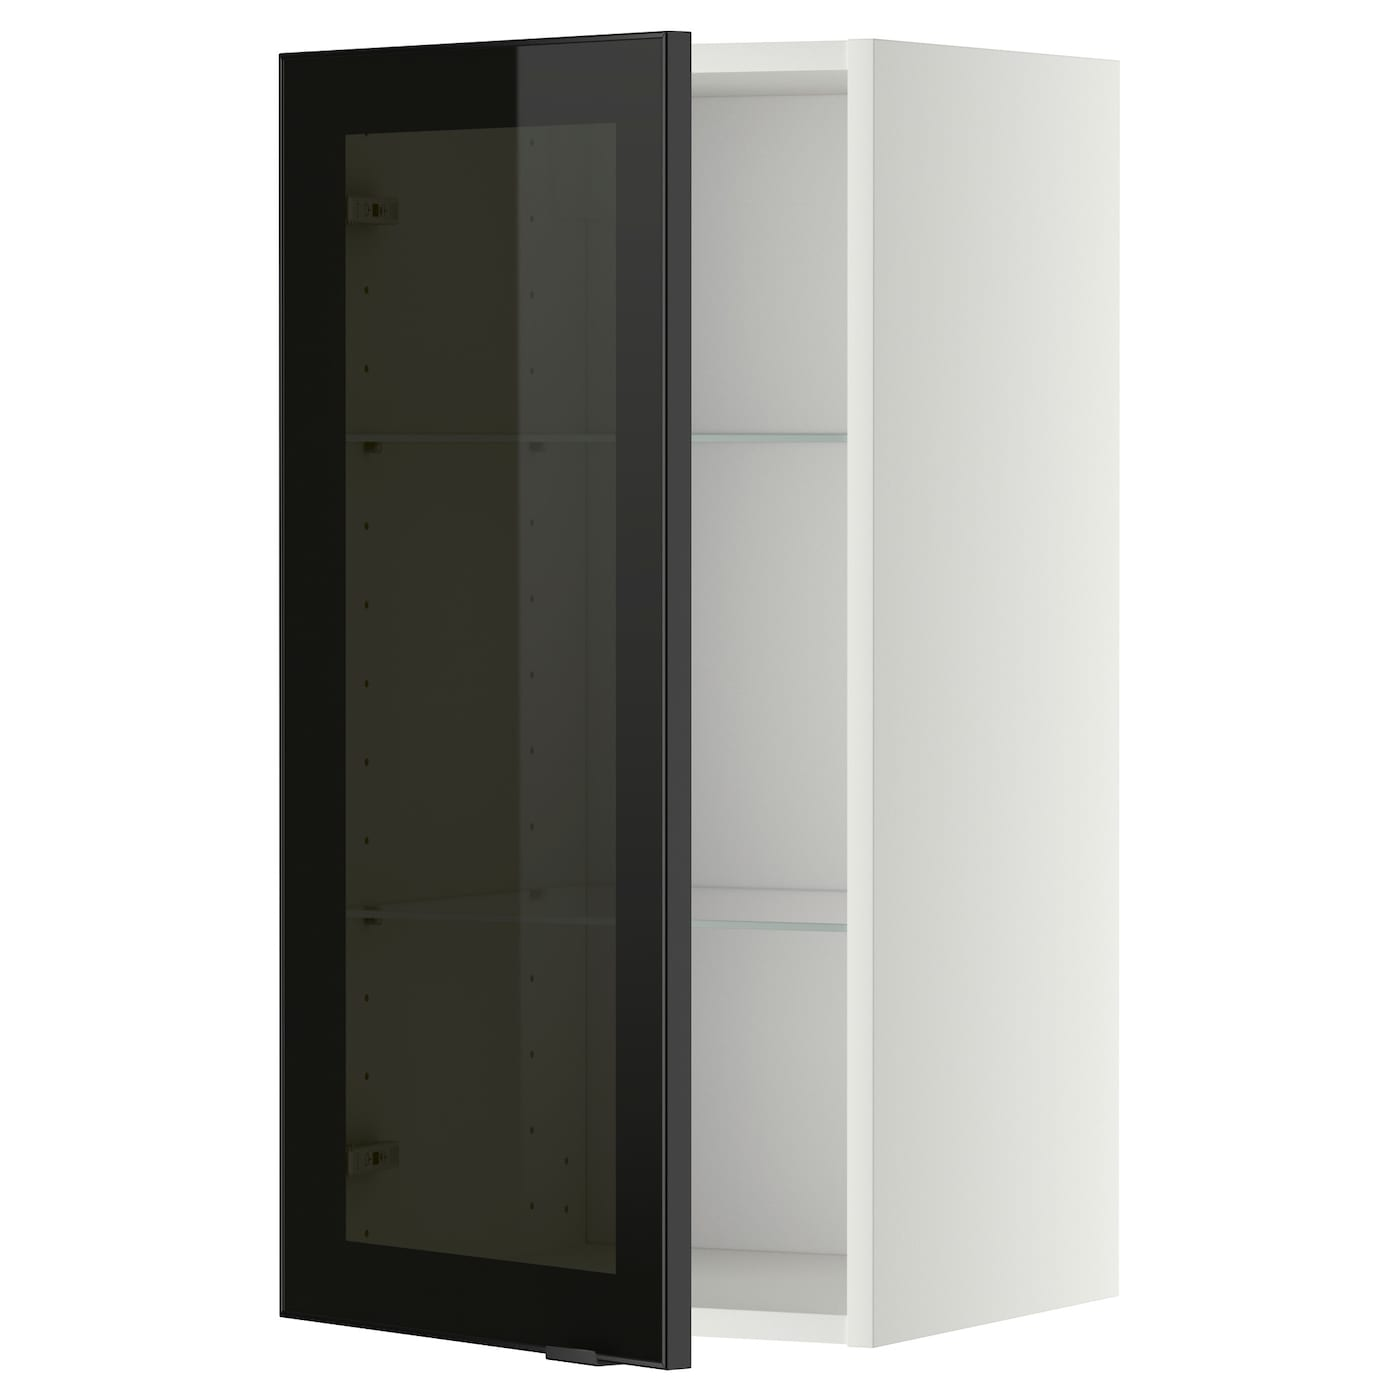 Metod wall cabinet w shelves glass door white jutis smoked for Ikea glass door wall cabinet